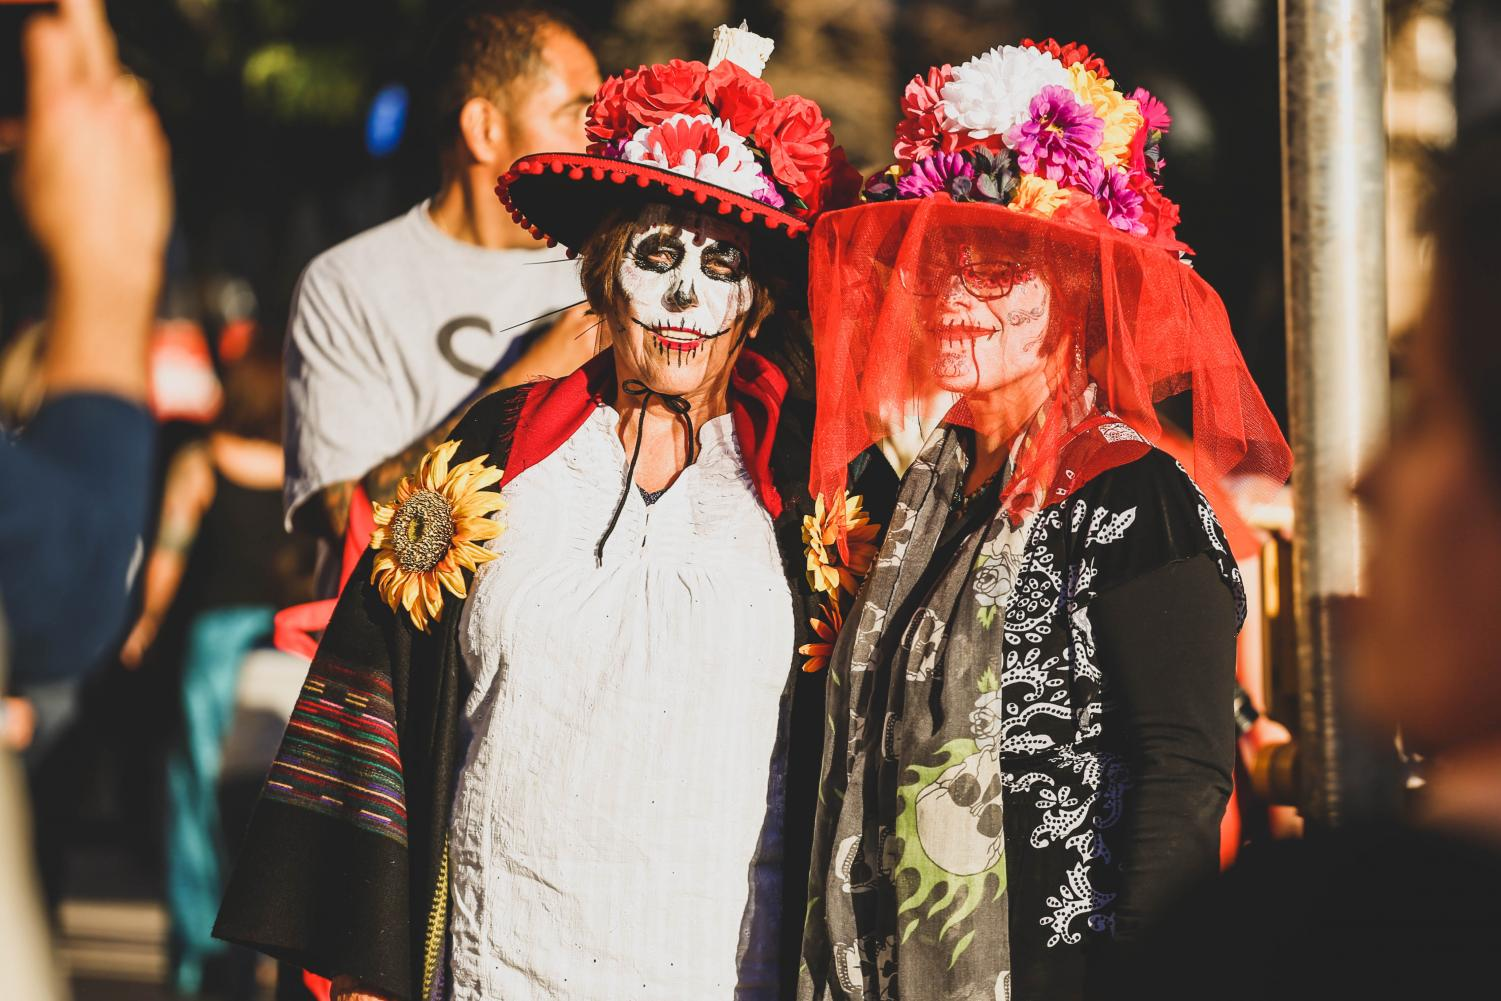 Attendees++dress+with+traditional+Mexican+clothings+and+paint+their+face+as+catrinas+to+celebrate+the+Day+of+the+Dead+on+Saturday%2C+Nov.+3+at+Down+Town+El+Paso.+